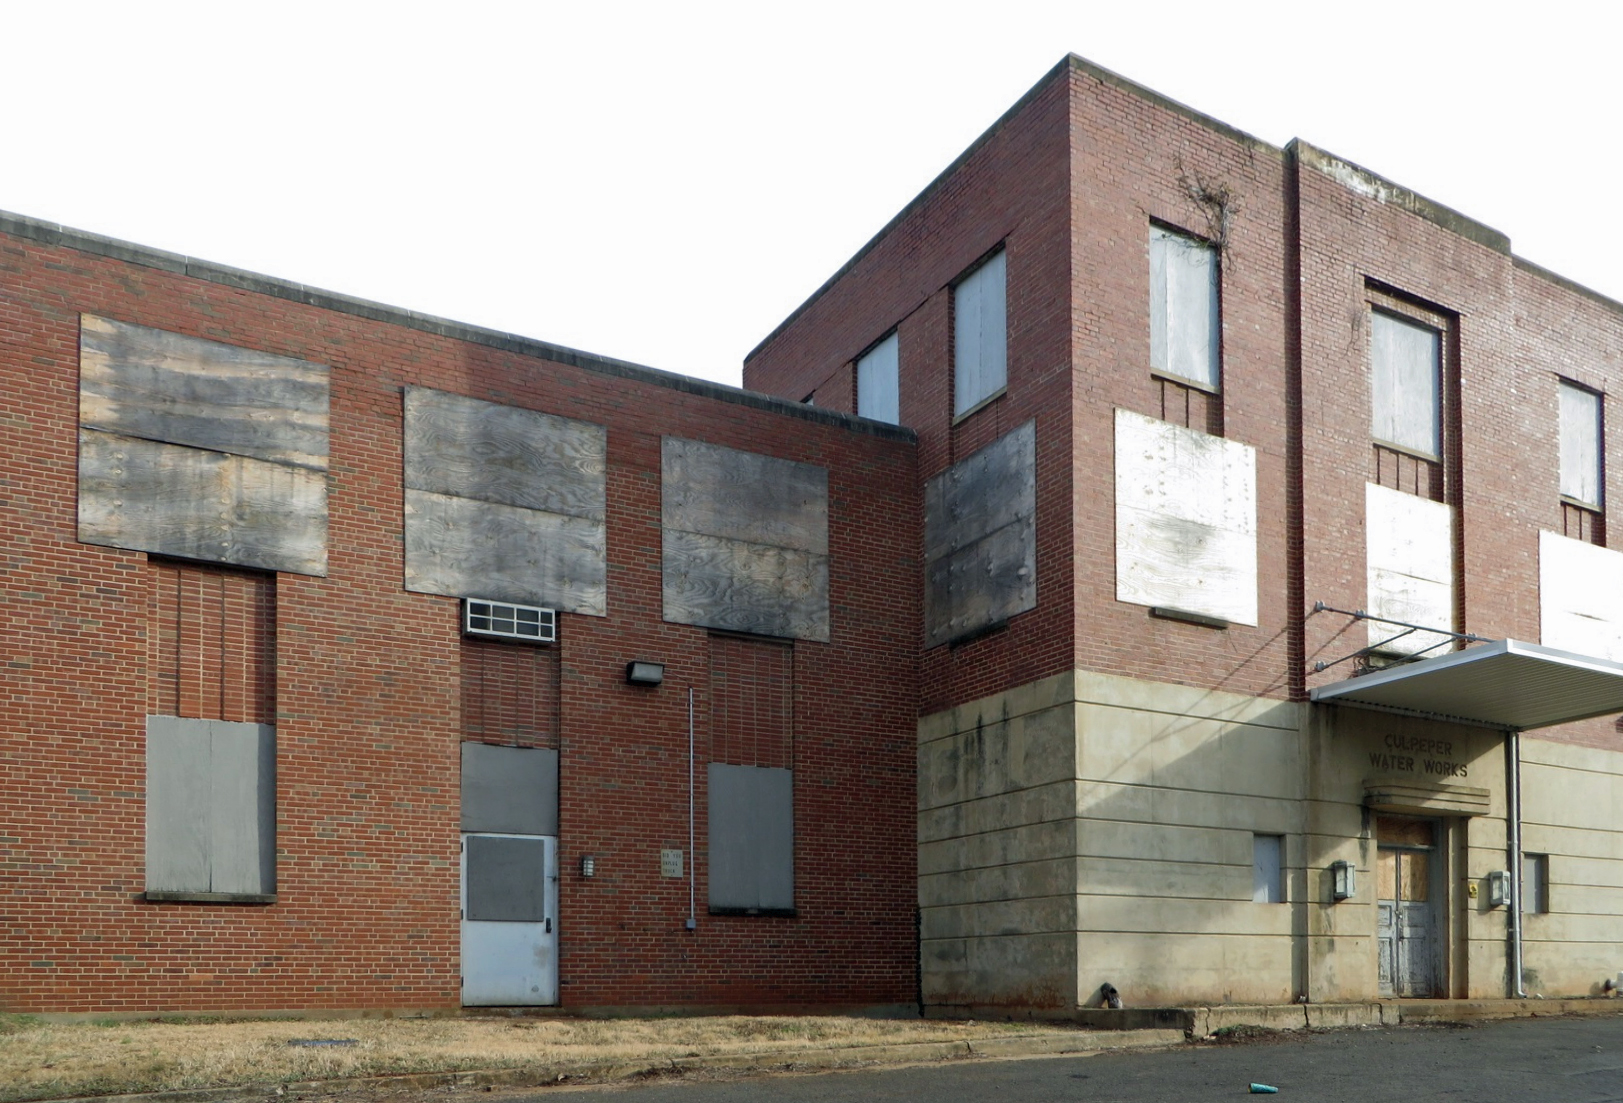 Culpeper Municipal Electric Plant and Waterworks